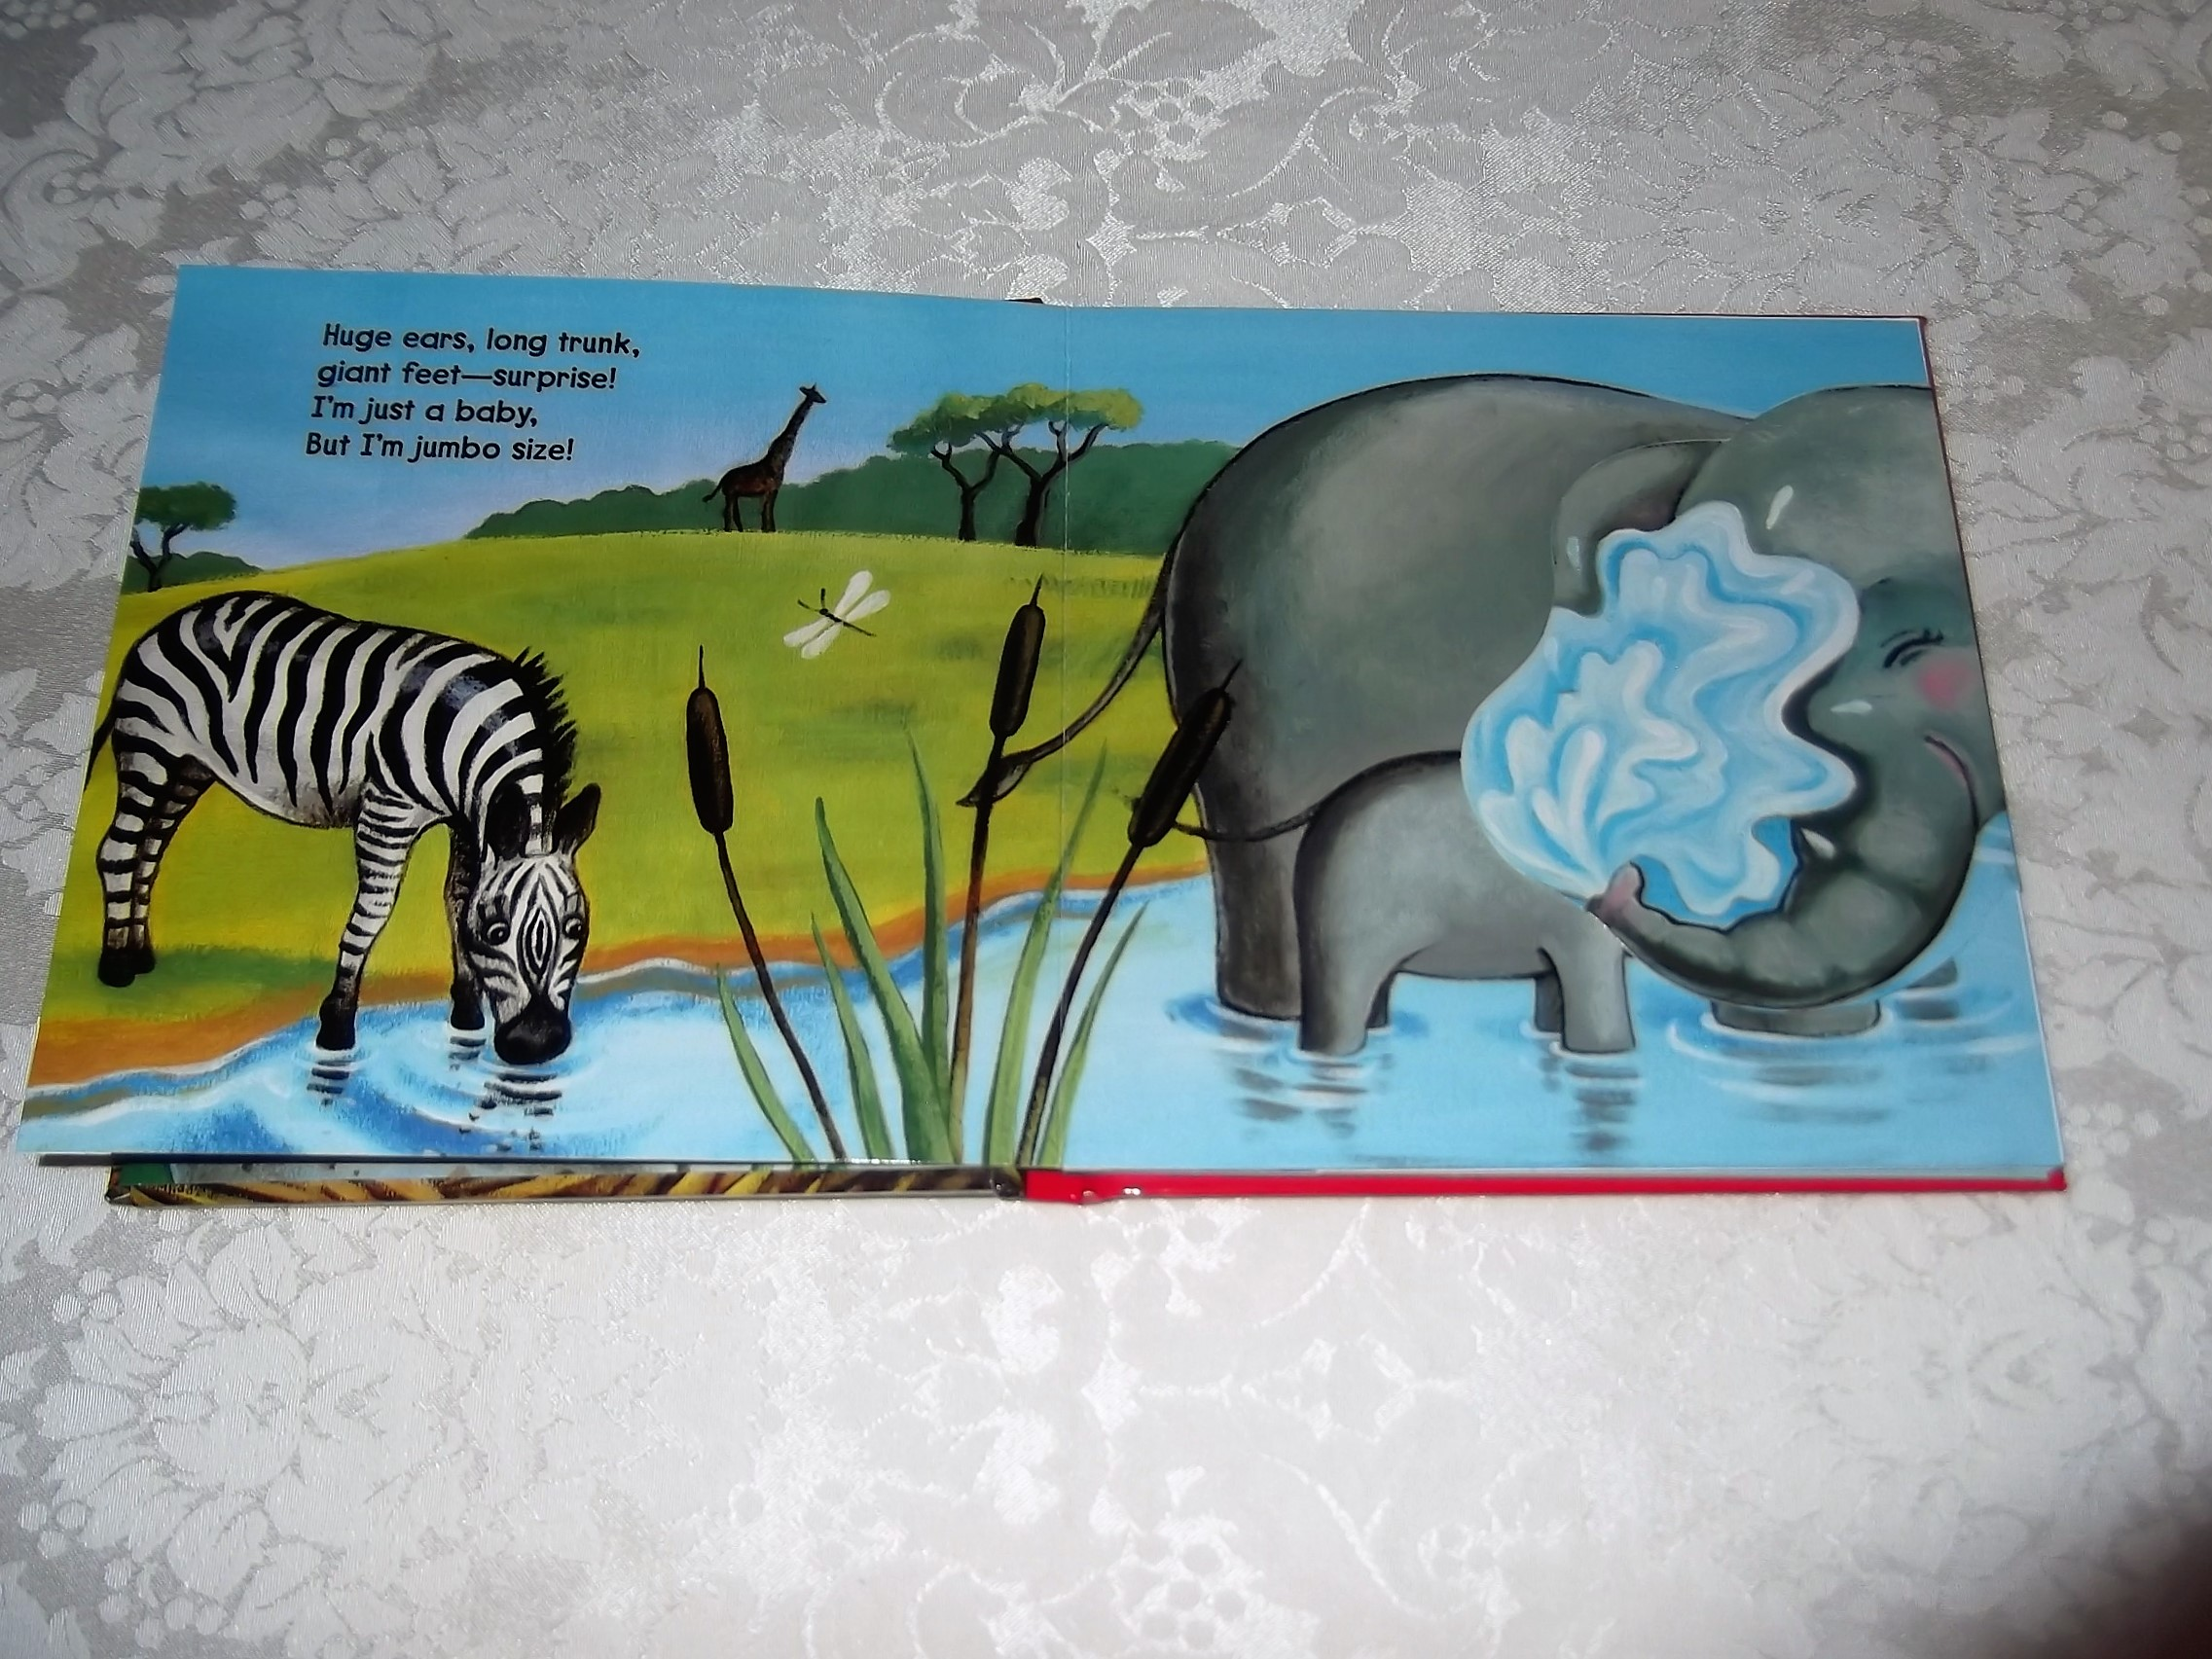 Image 3 of Guess Who Baby Animals Jodie Shepherd Brand New Lift A Flap HC